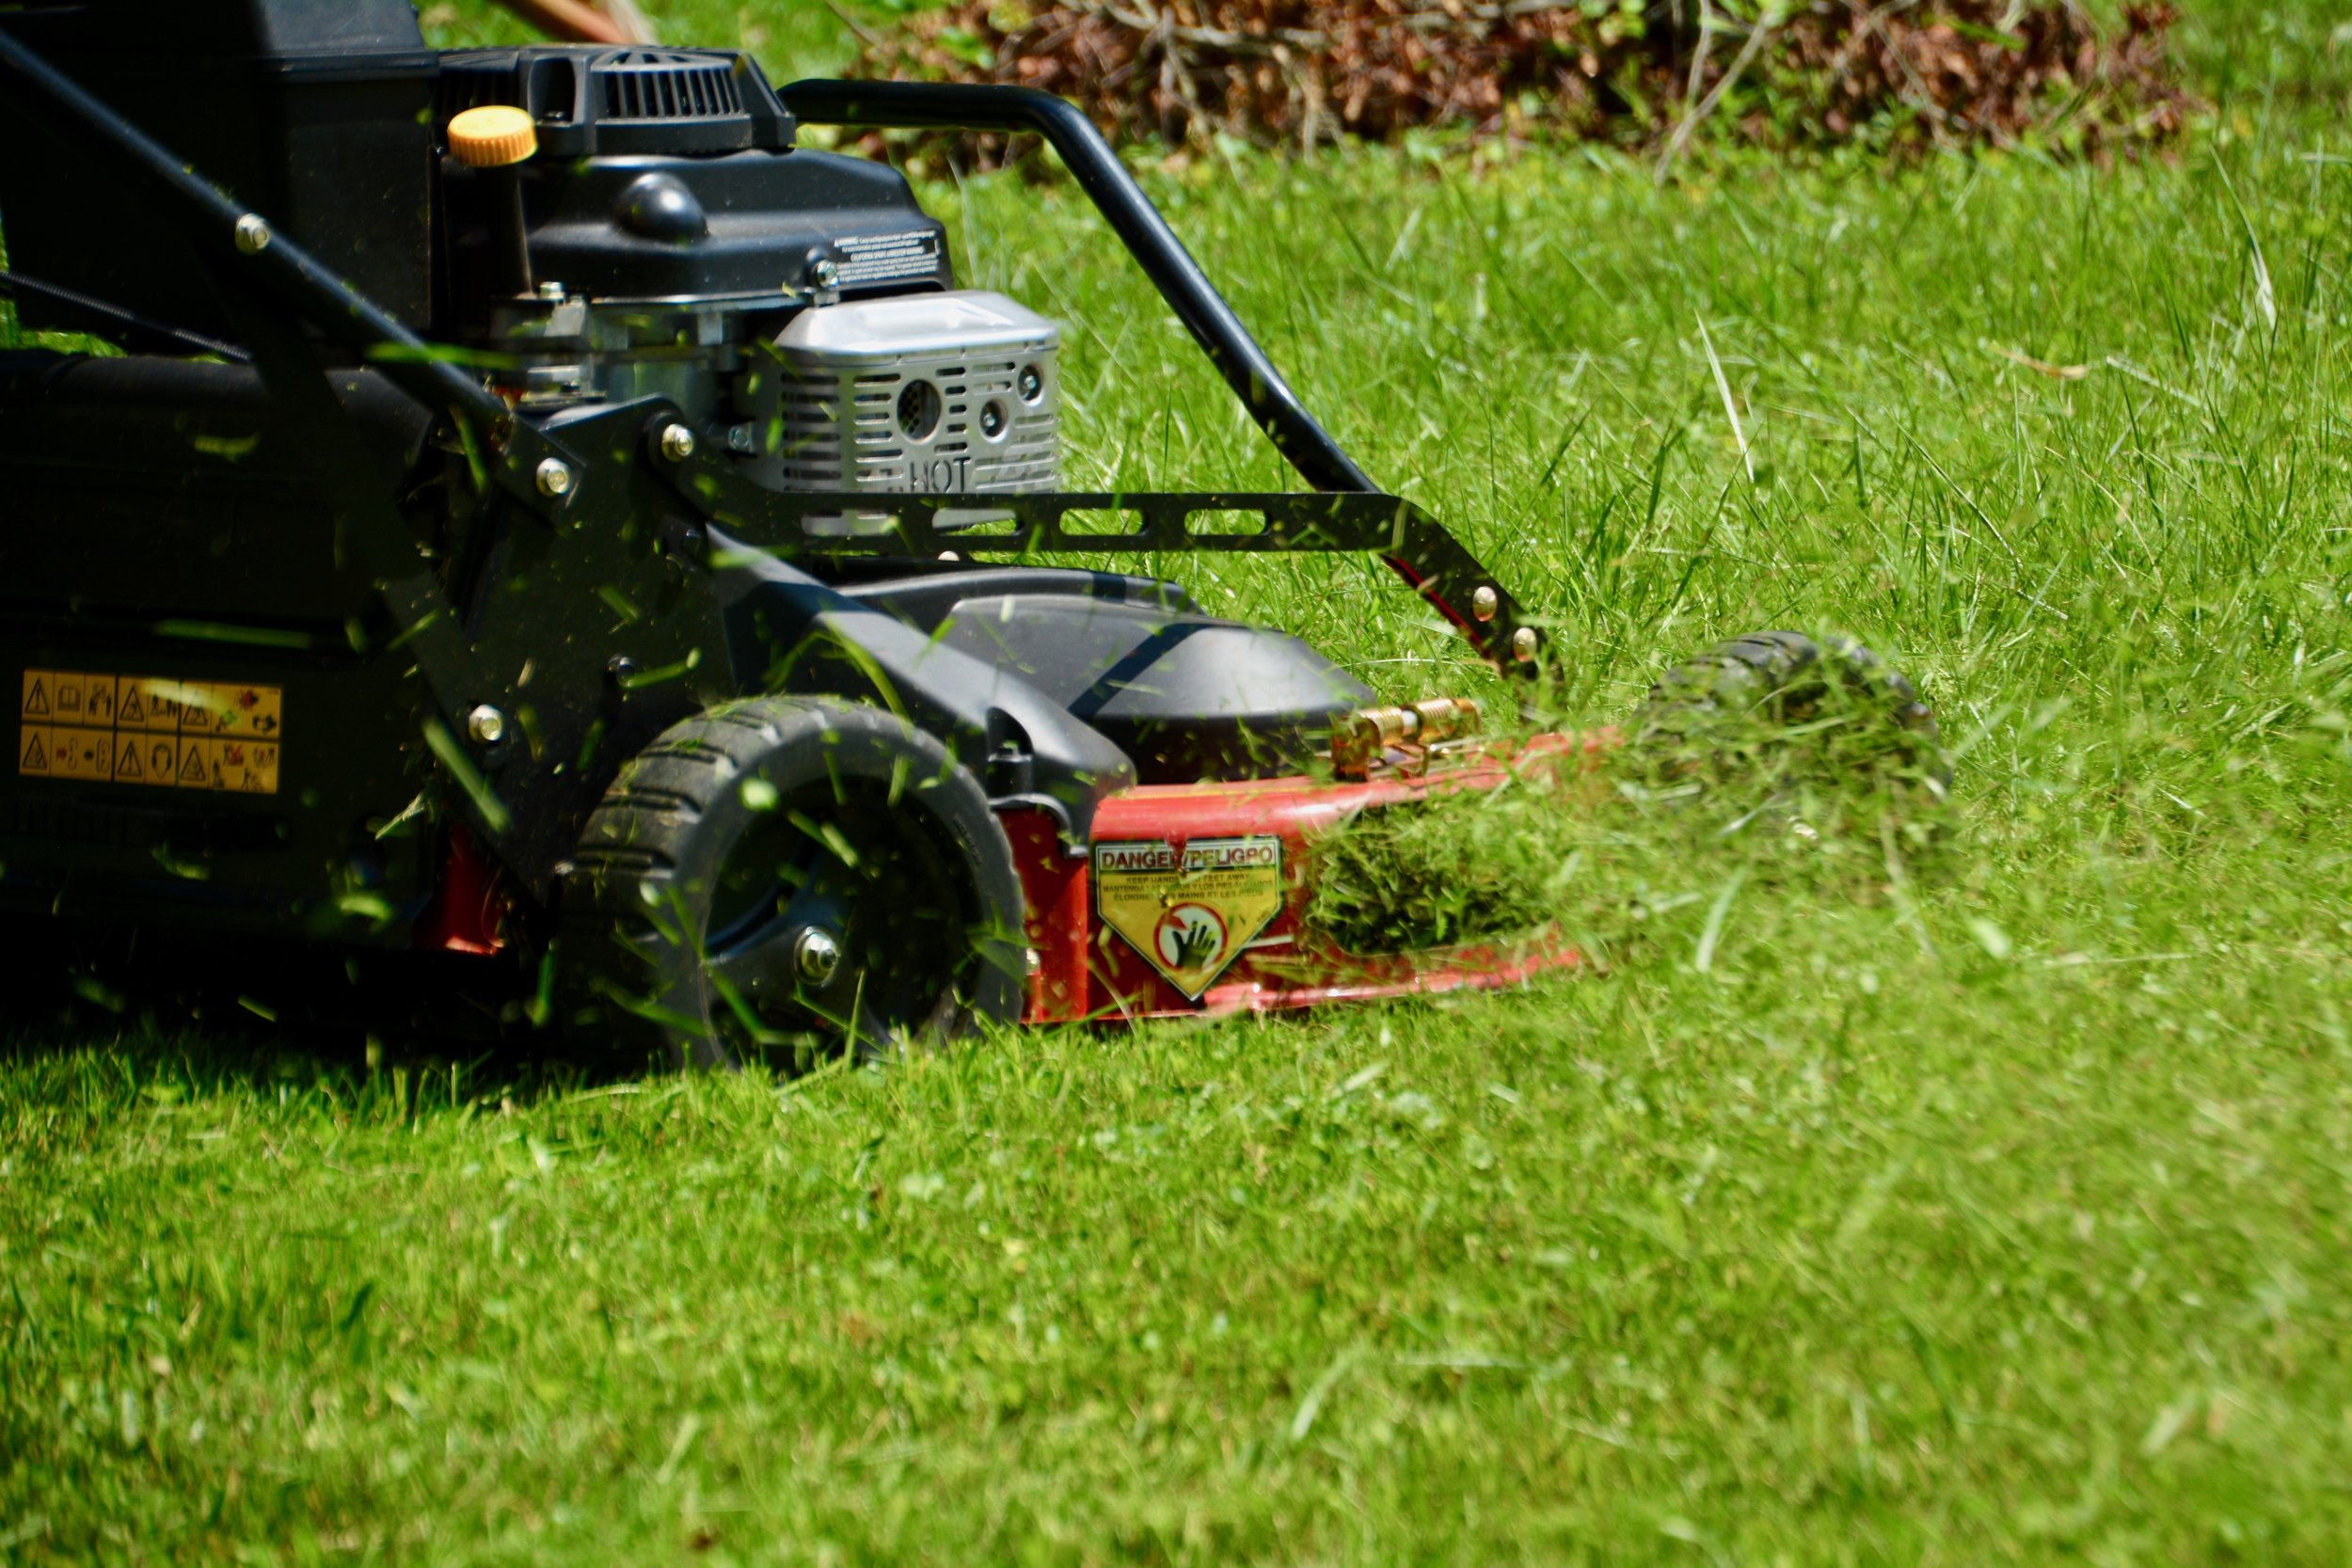 Small mower spraying grass.jpeg